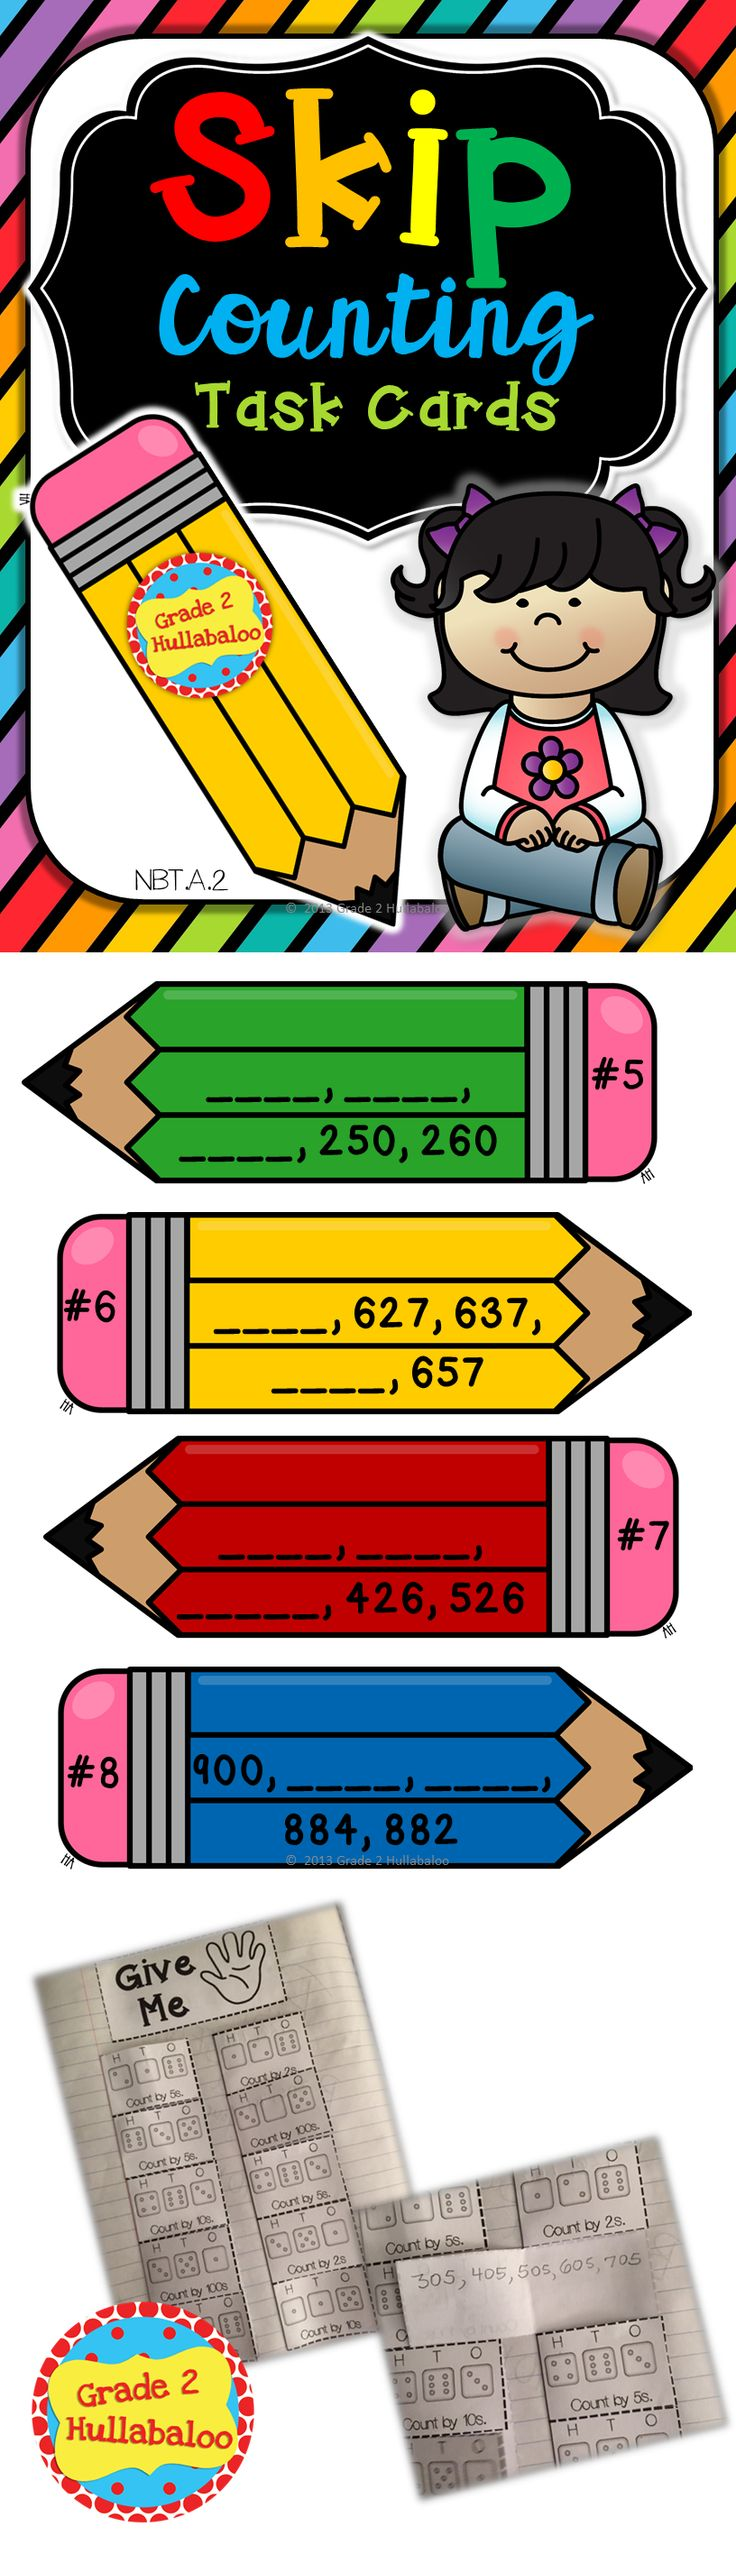 Worksheet Skip Counting Games Online 1000 ideas about skip counting games on pinterest included 28 colorful pencil task cards directions for partner game recording